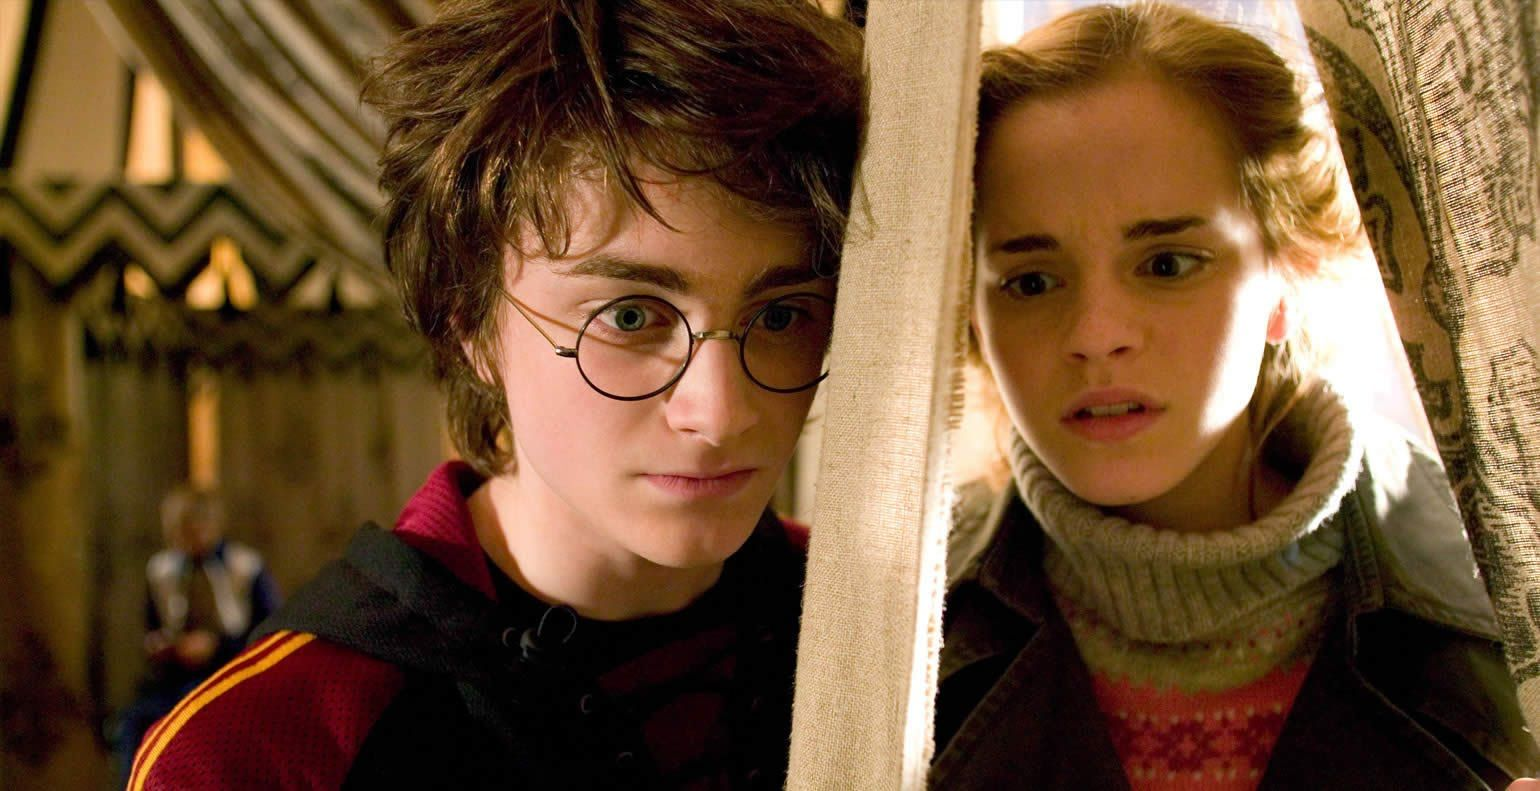 Harry Potter: 20 Crazy Facts About Harry and Hermione's